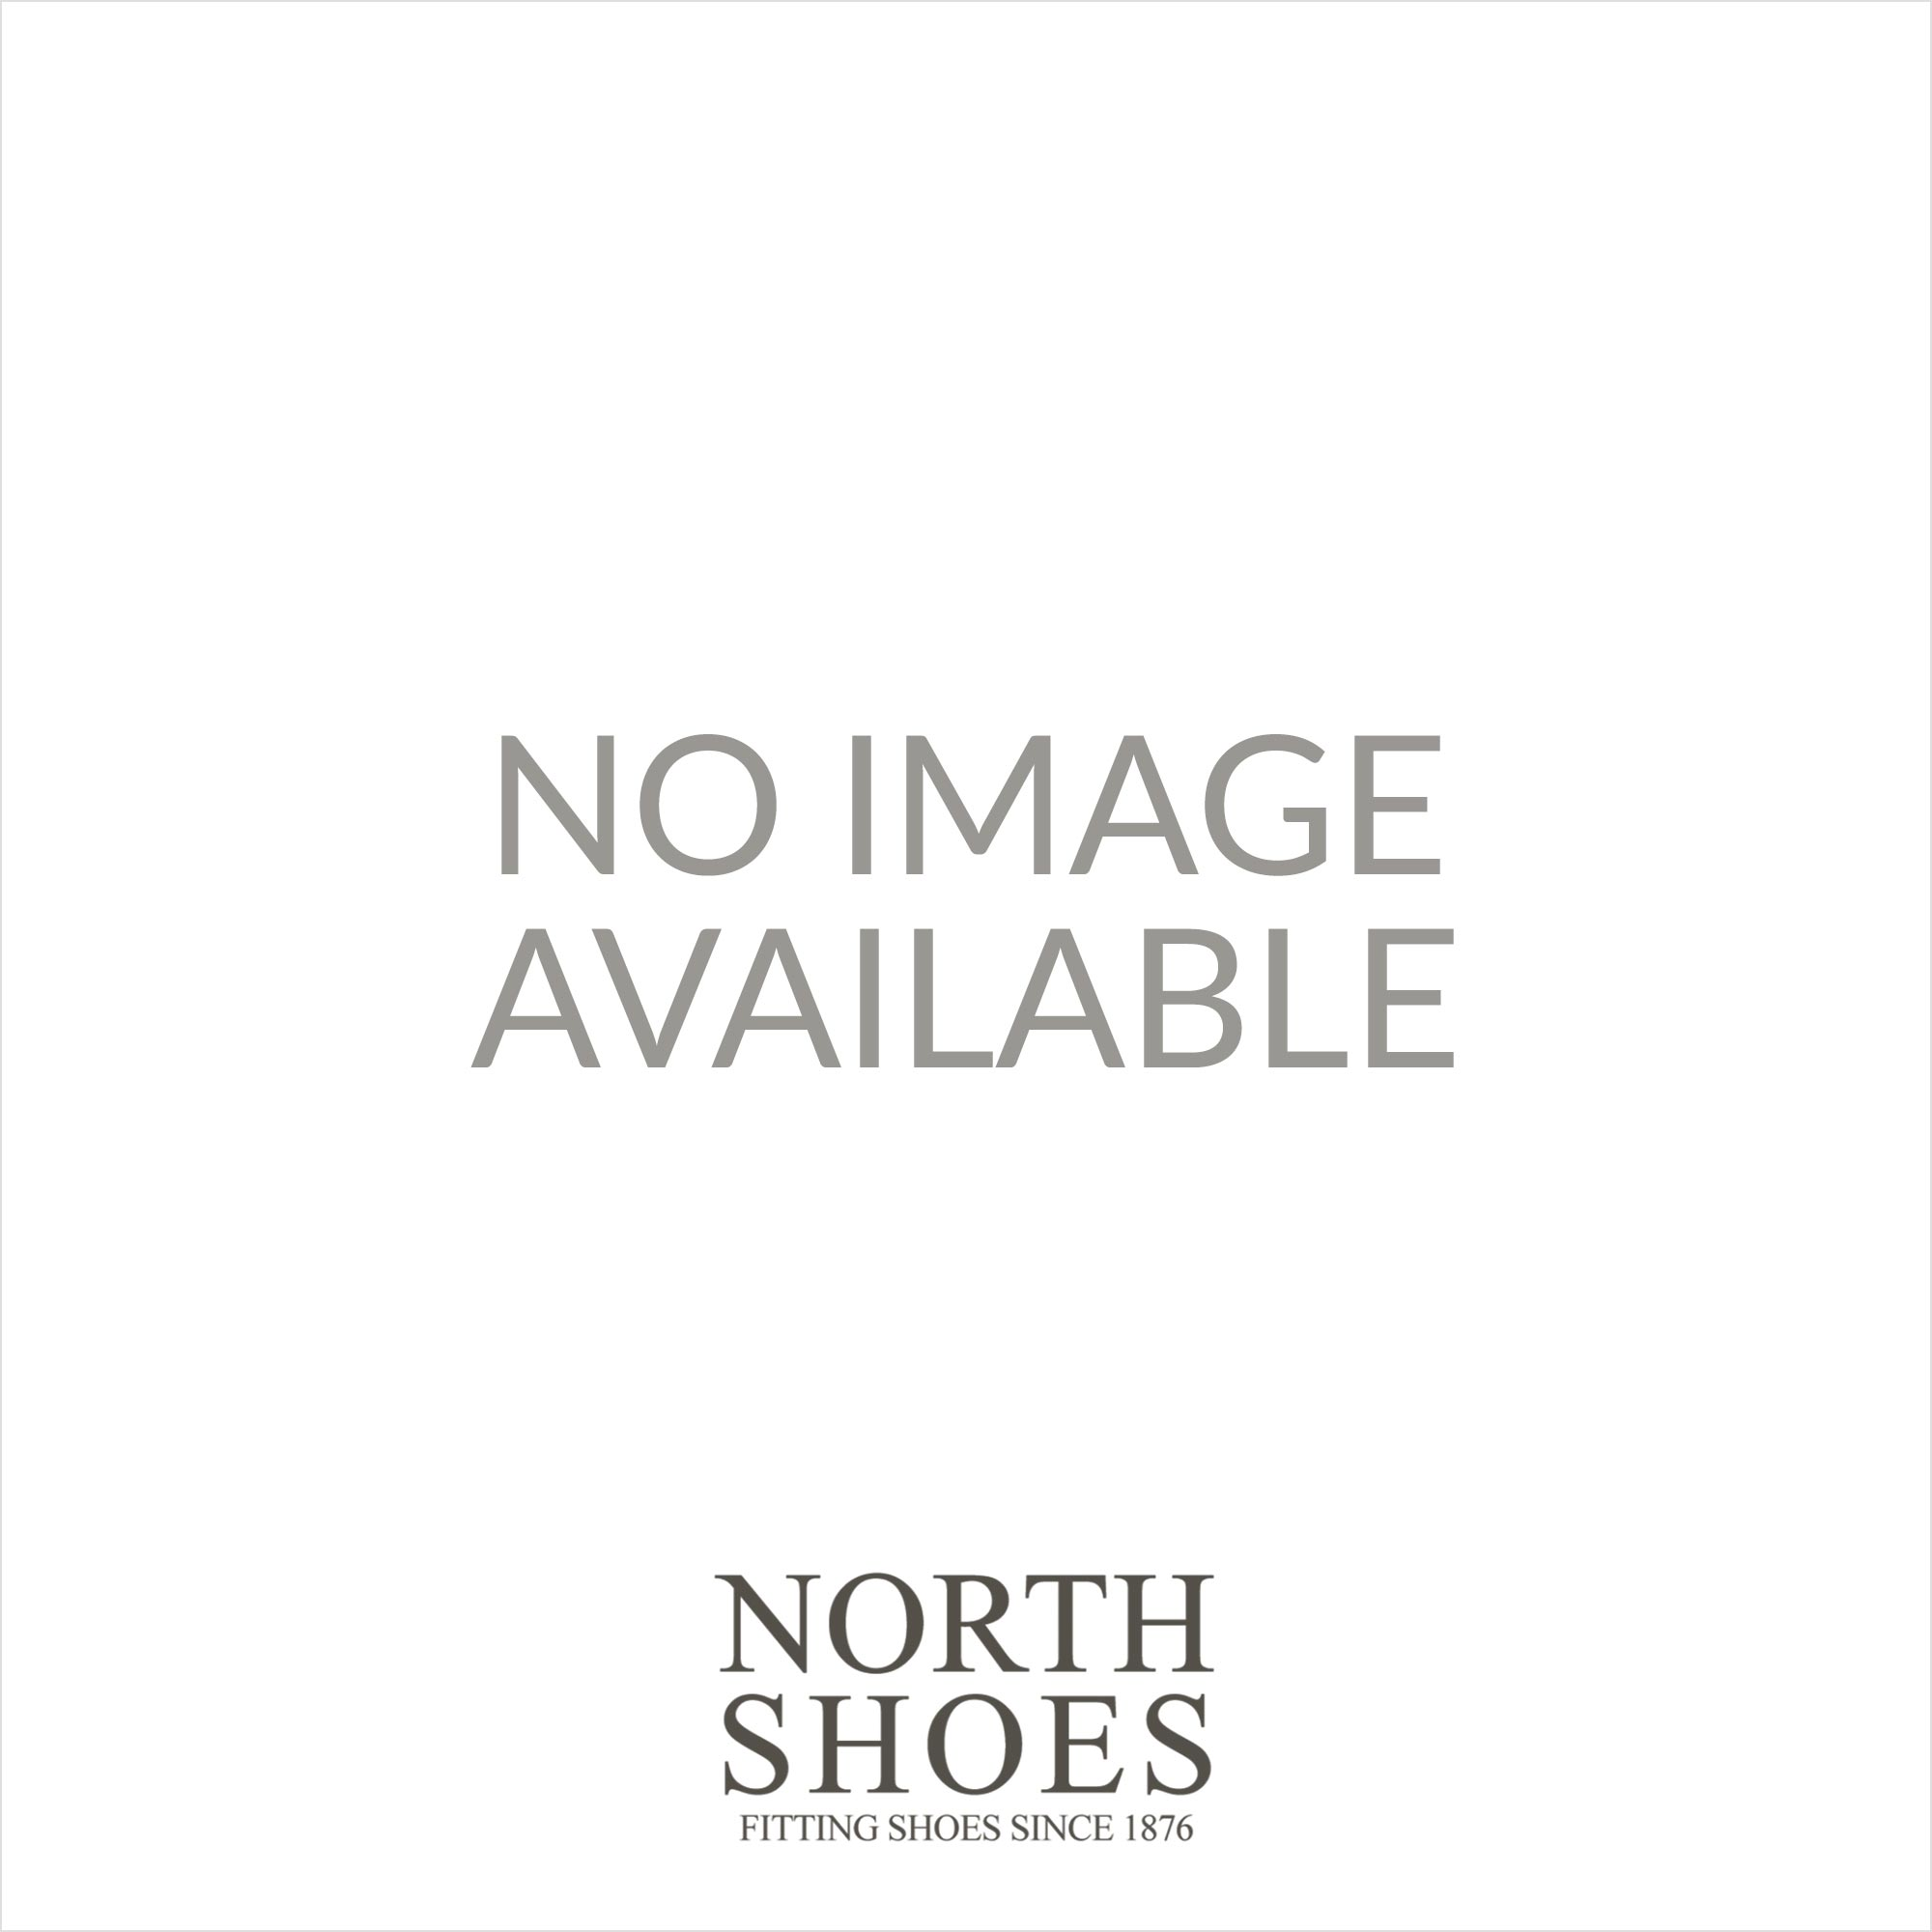 25bd92b9 Clarks Un Haven Strap Black Leather Womens Mary Jane Shoe - Clarks from  North Shoes UK